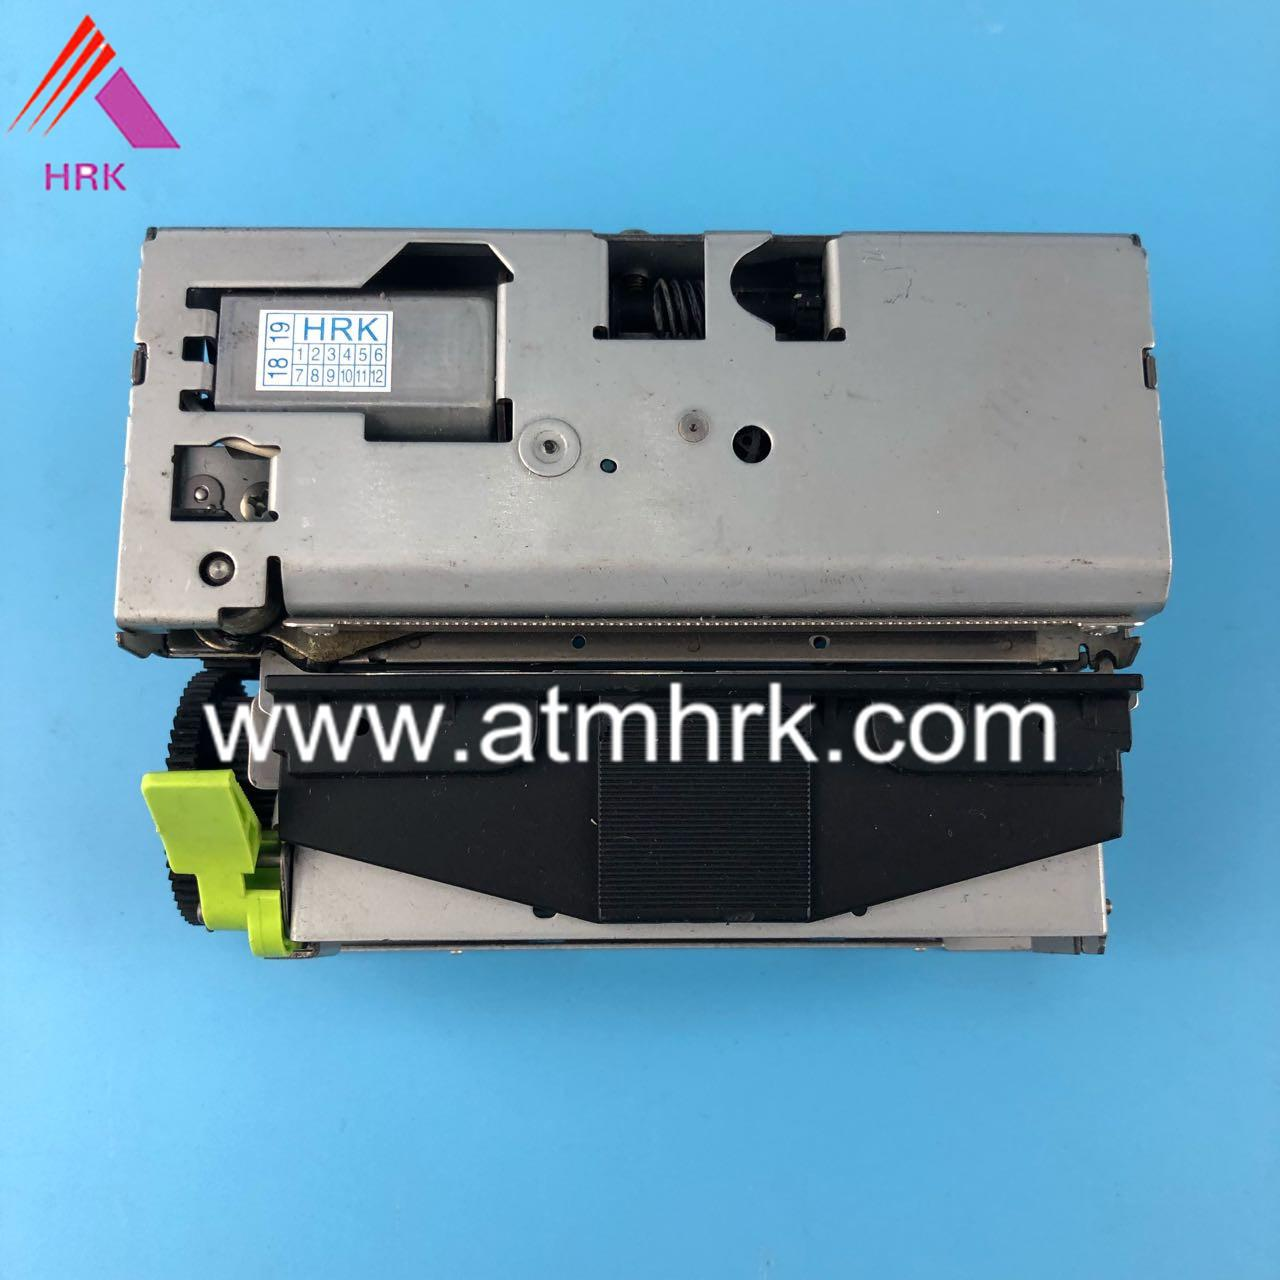 China Original New Atm Spare Parts Thermal Print Head For Grg Atm Machines factory